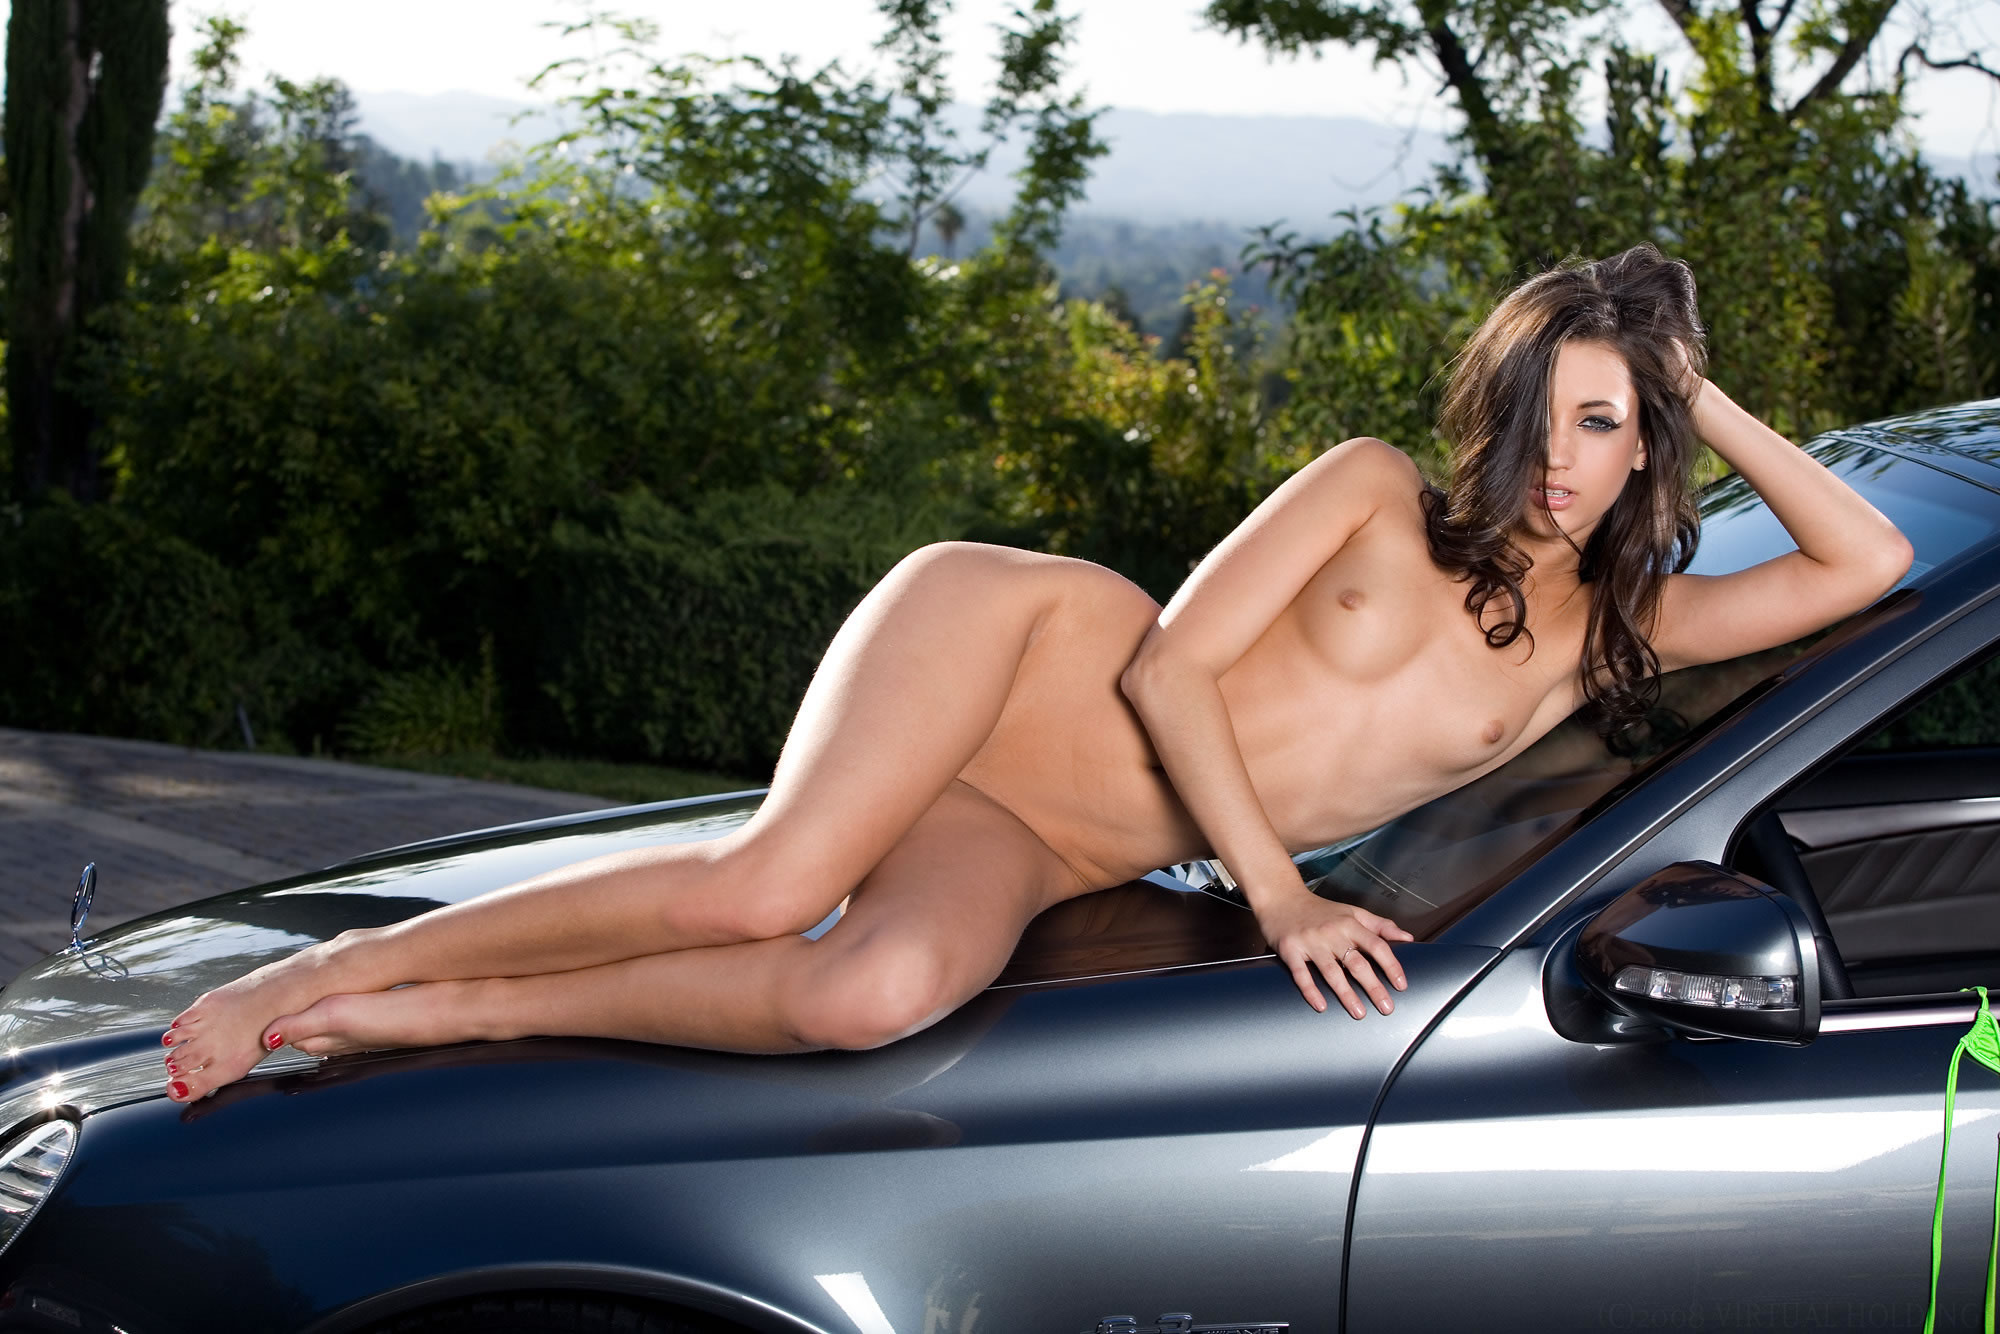 cool cars and nude women